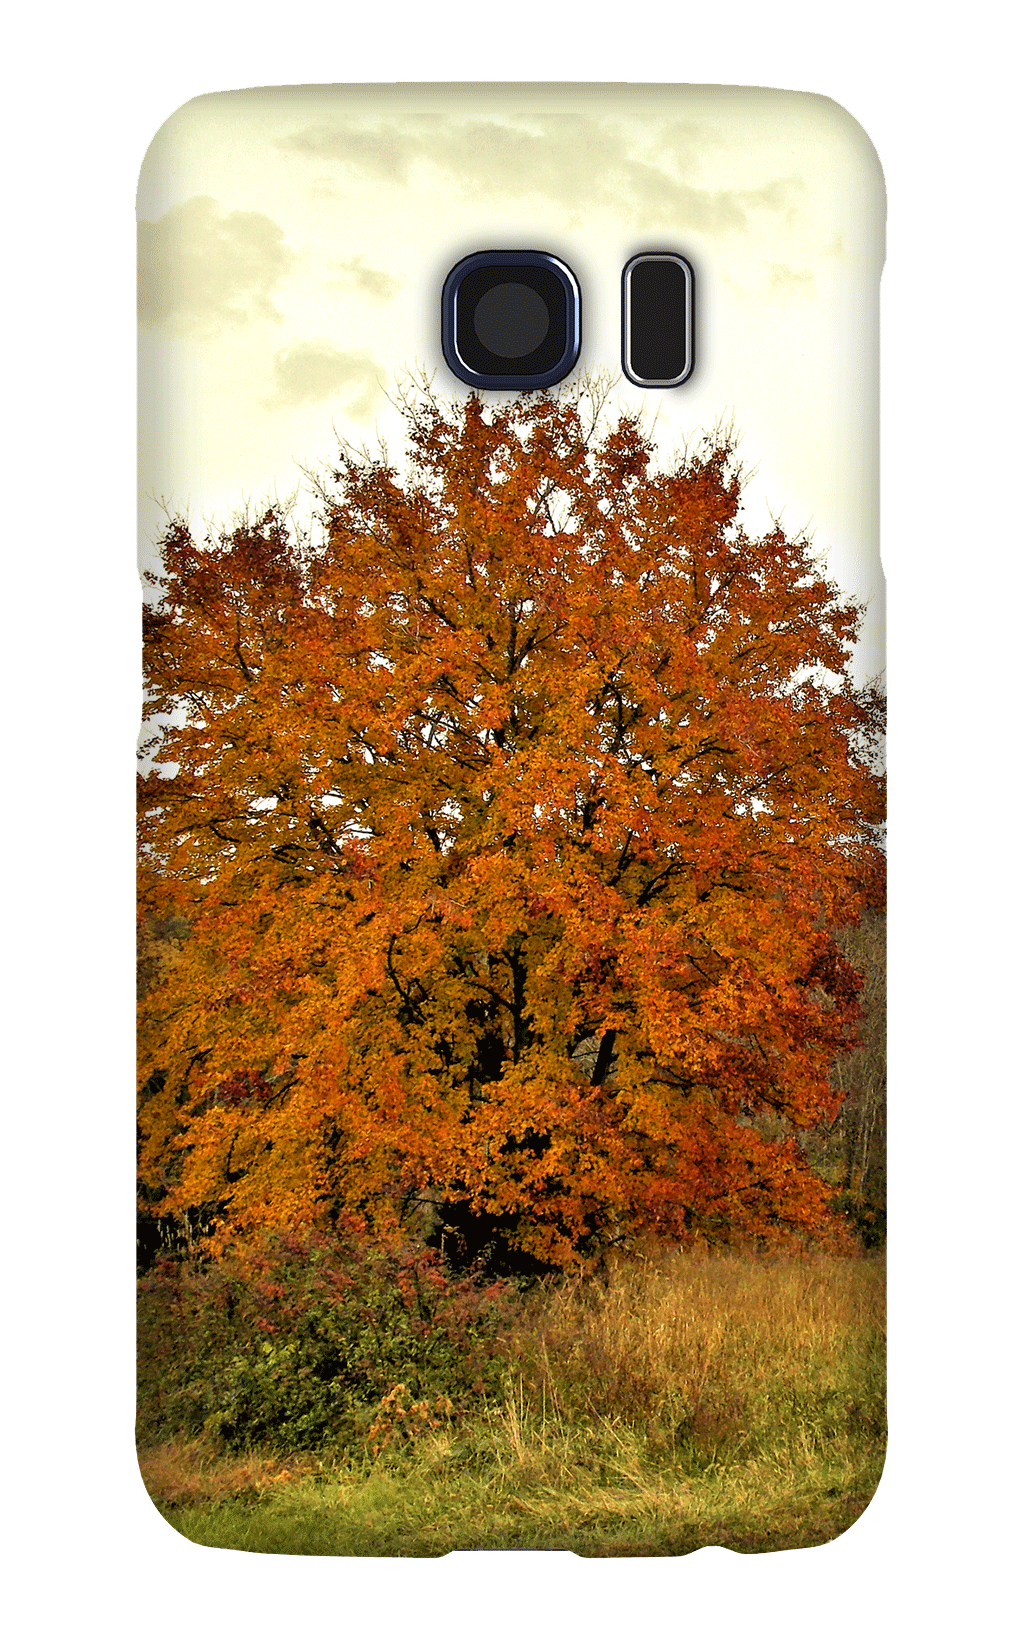 Autumn-Cellphone-Case